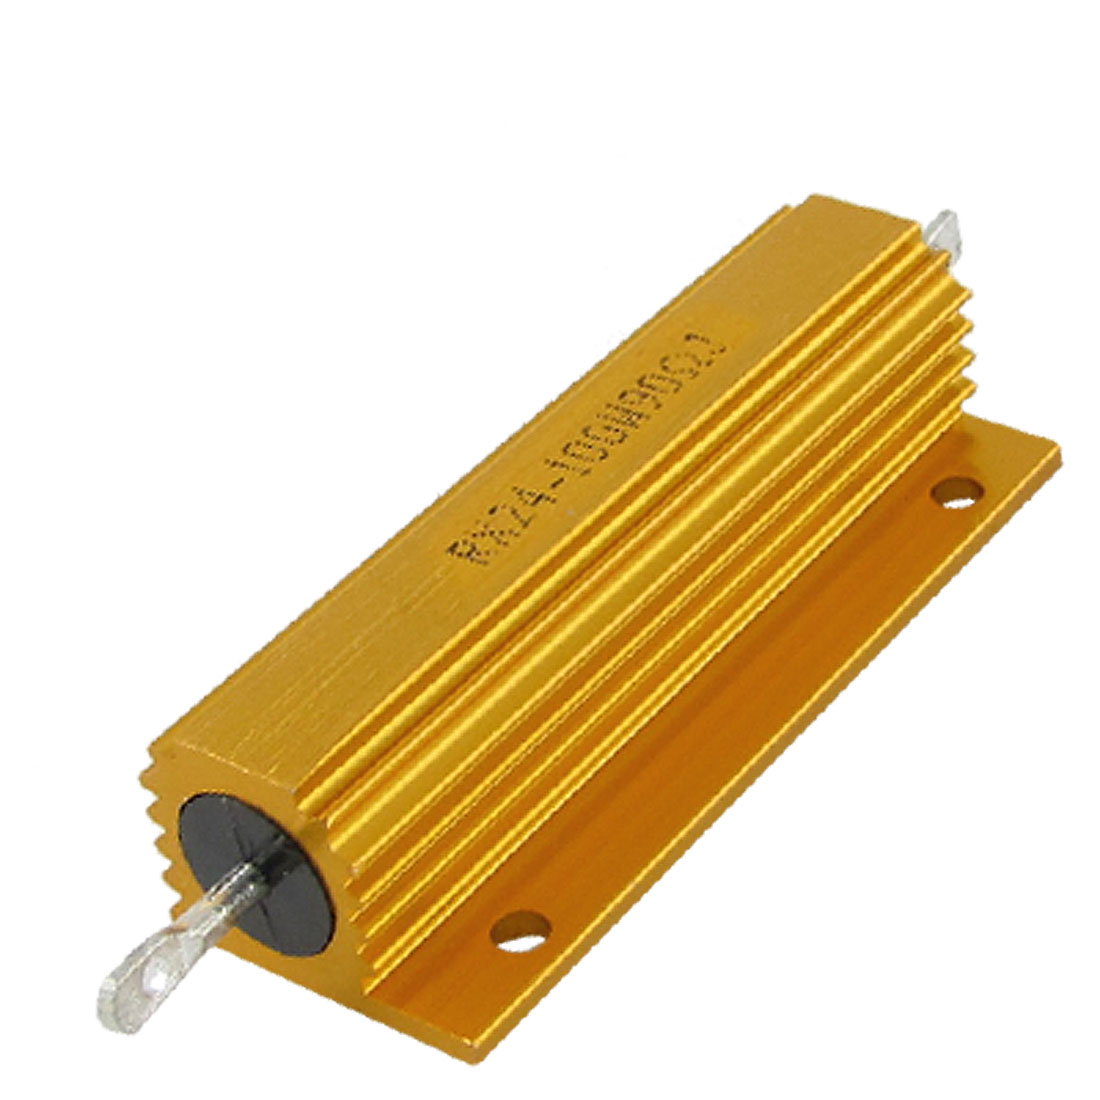 Gold Tone Housed 100W 90 Ohm Resistance Aluminium Resistor